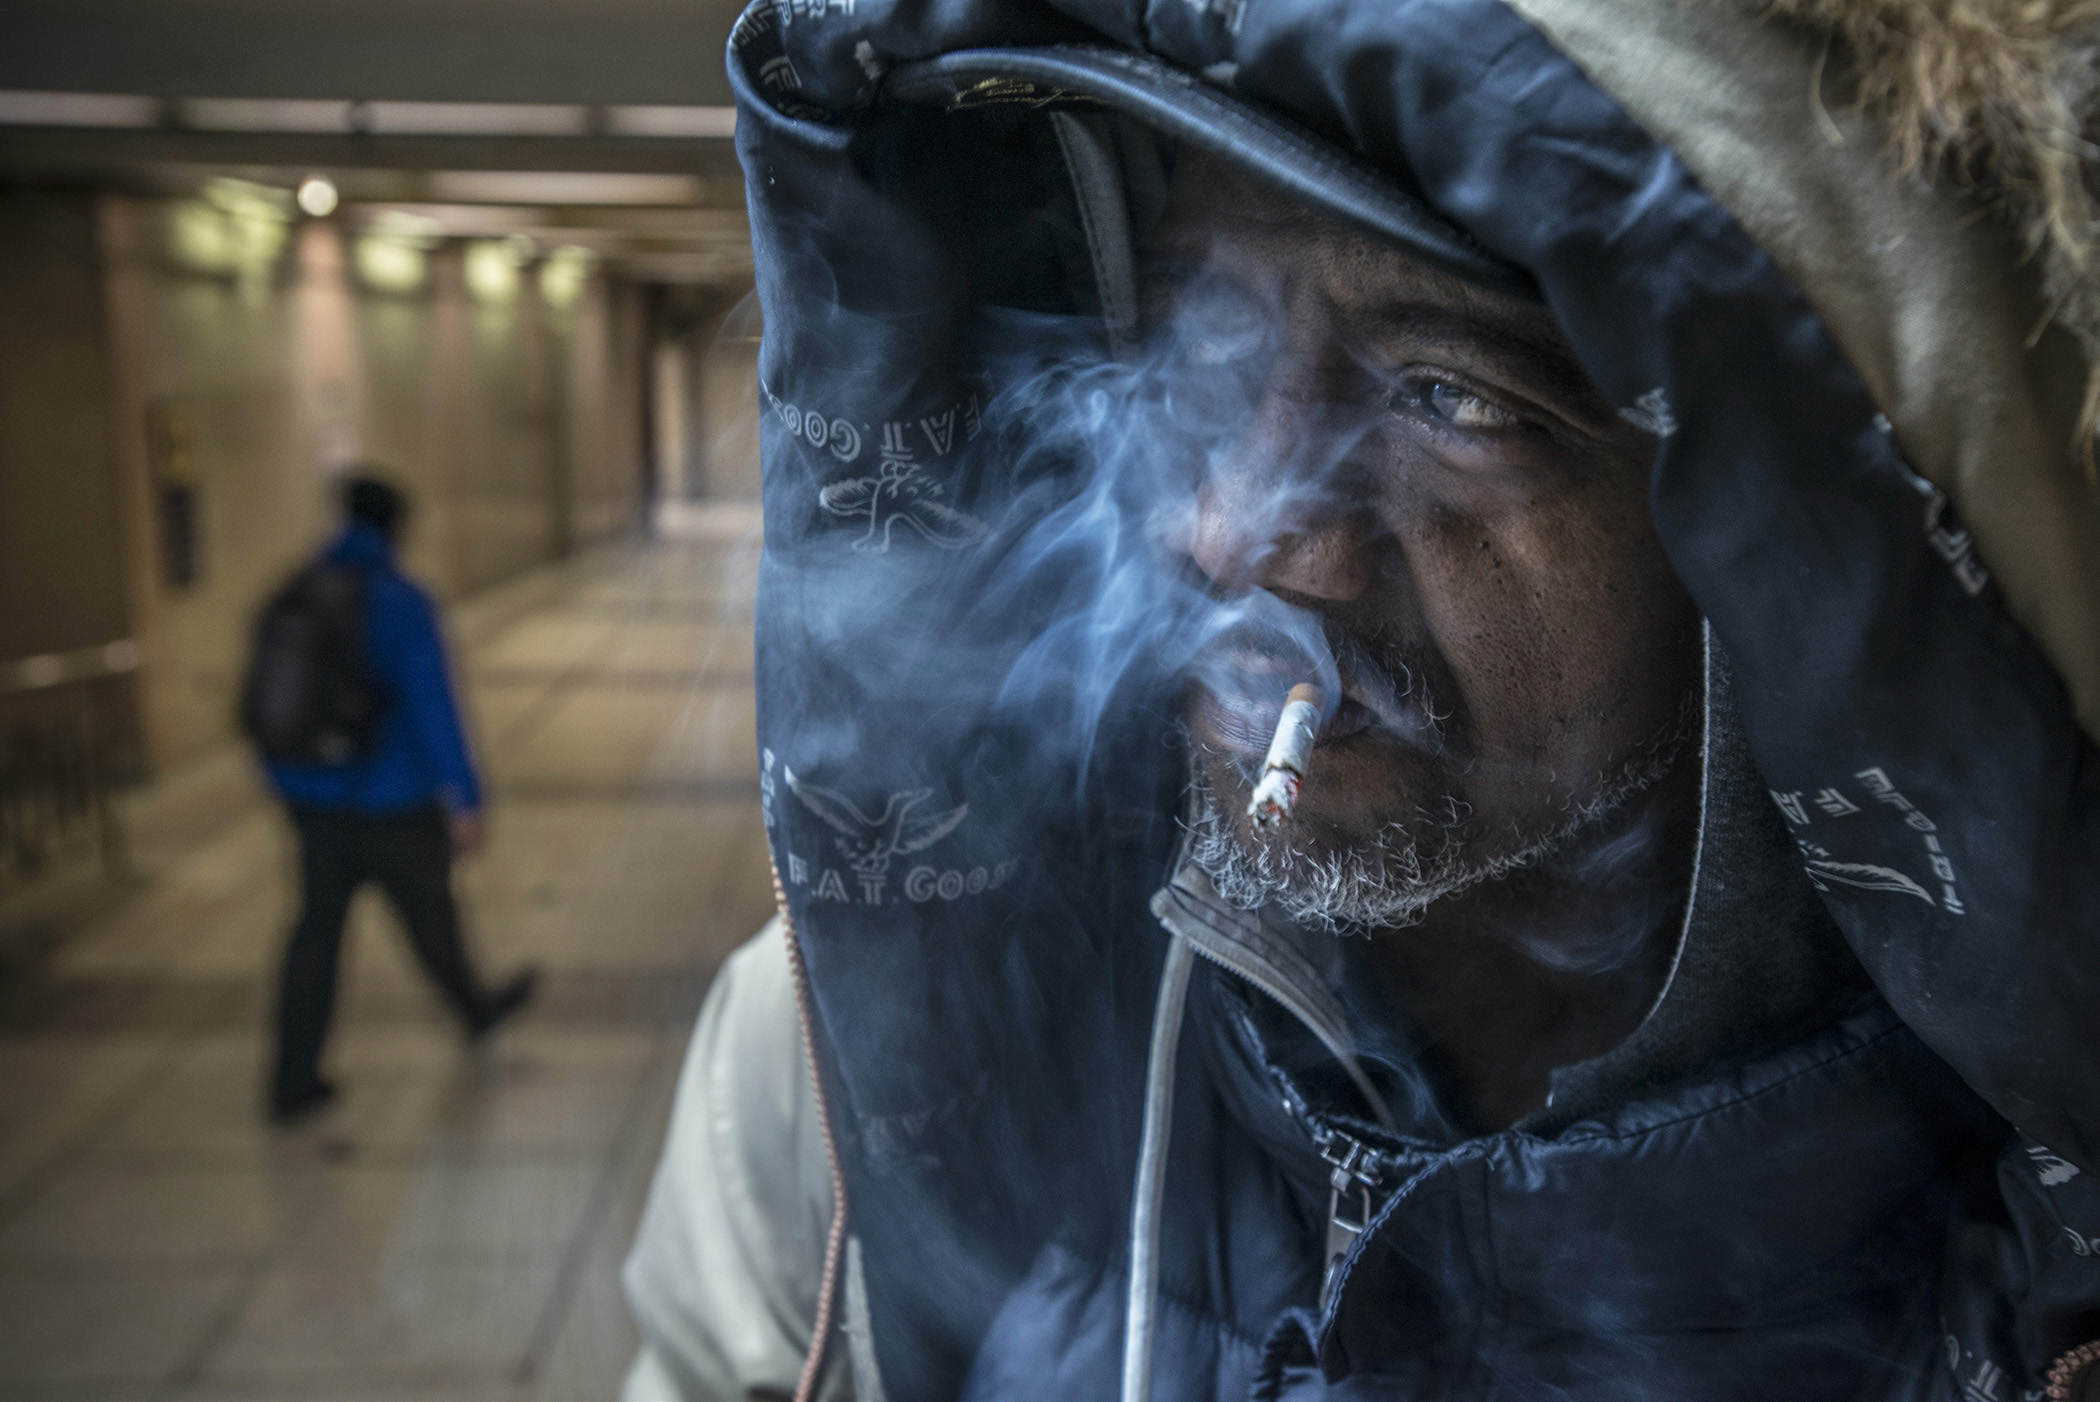 Just outside of the Metra Train station, Reggie smokes one of the many discarded cigarettes he picked up along the streets and sidewalks of downtown Chicago. (Photo courtesy of Lloyd Degrane)